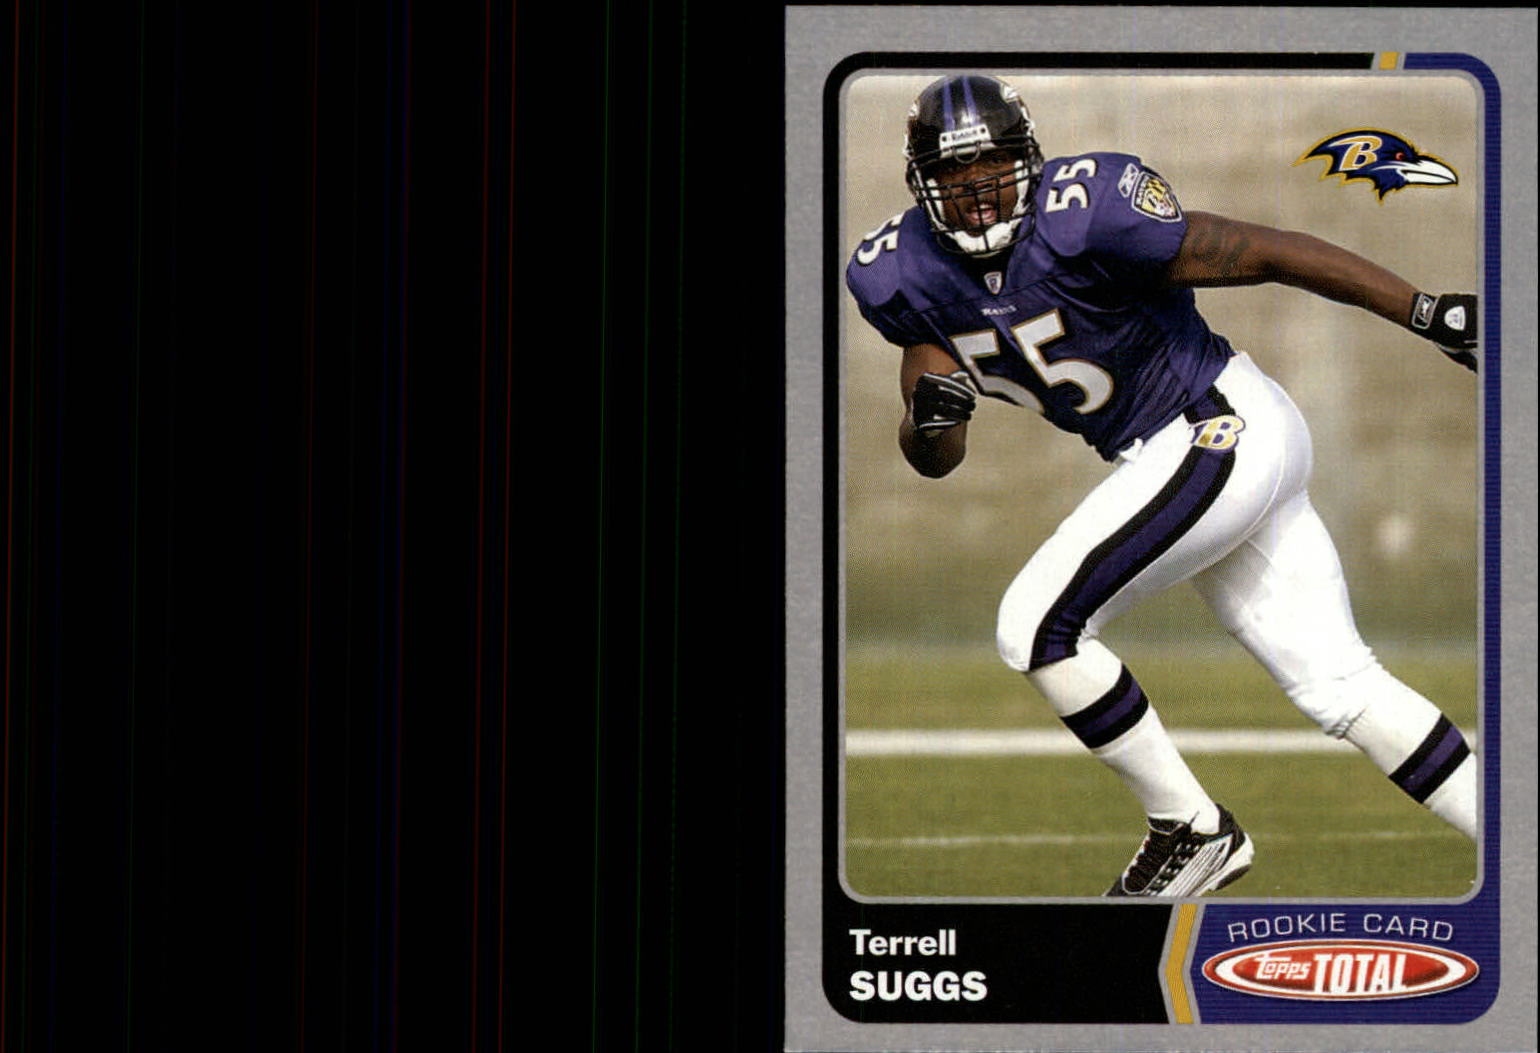 2003 Topps Total Silver #531 Terrell Suggs